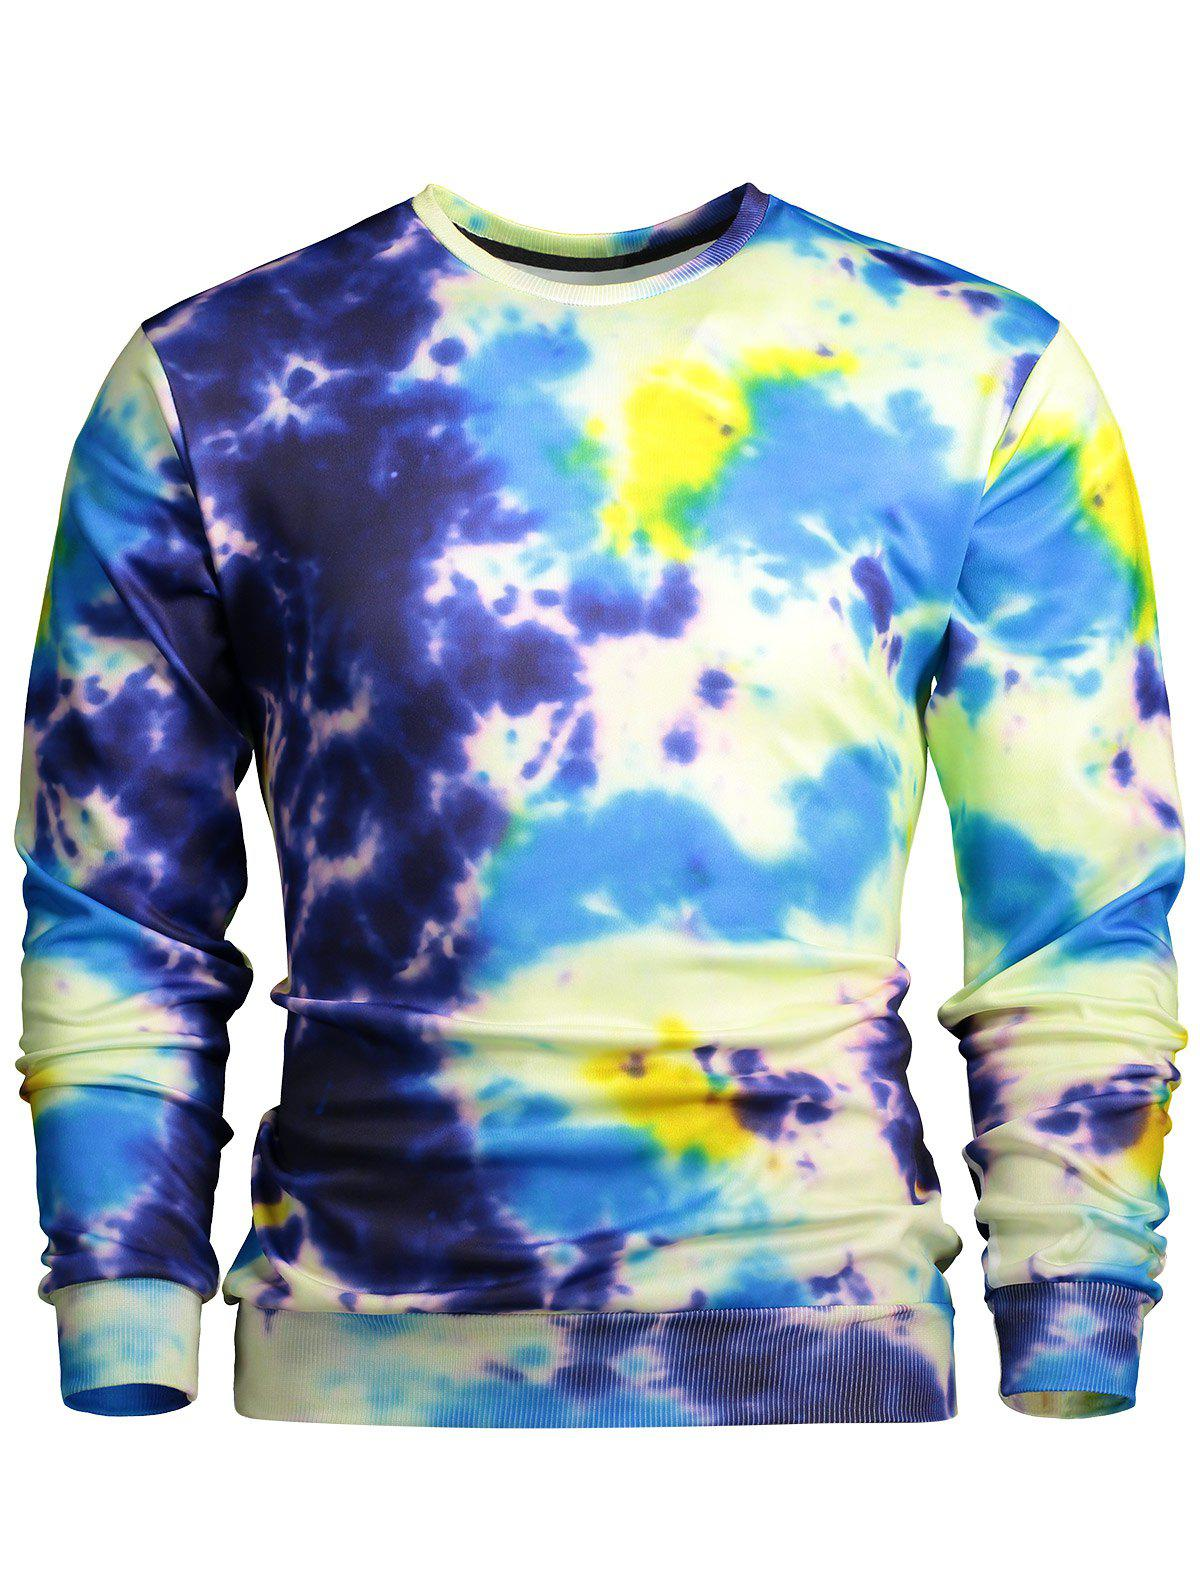 Buy Crew Neck Color Block Splatter Paint Sweatshirt COLORMIX